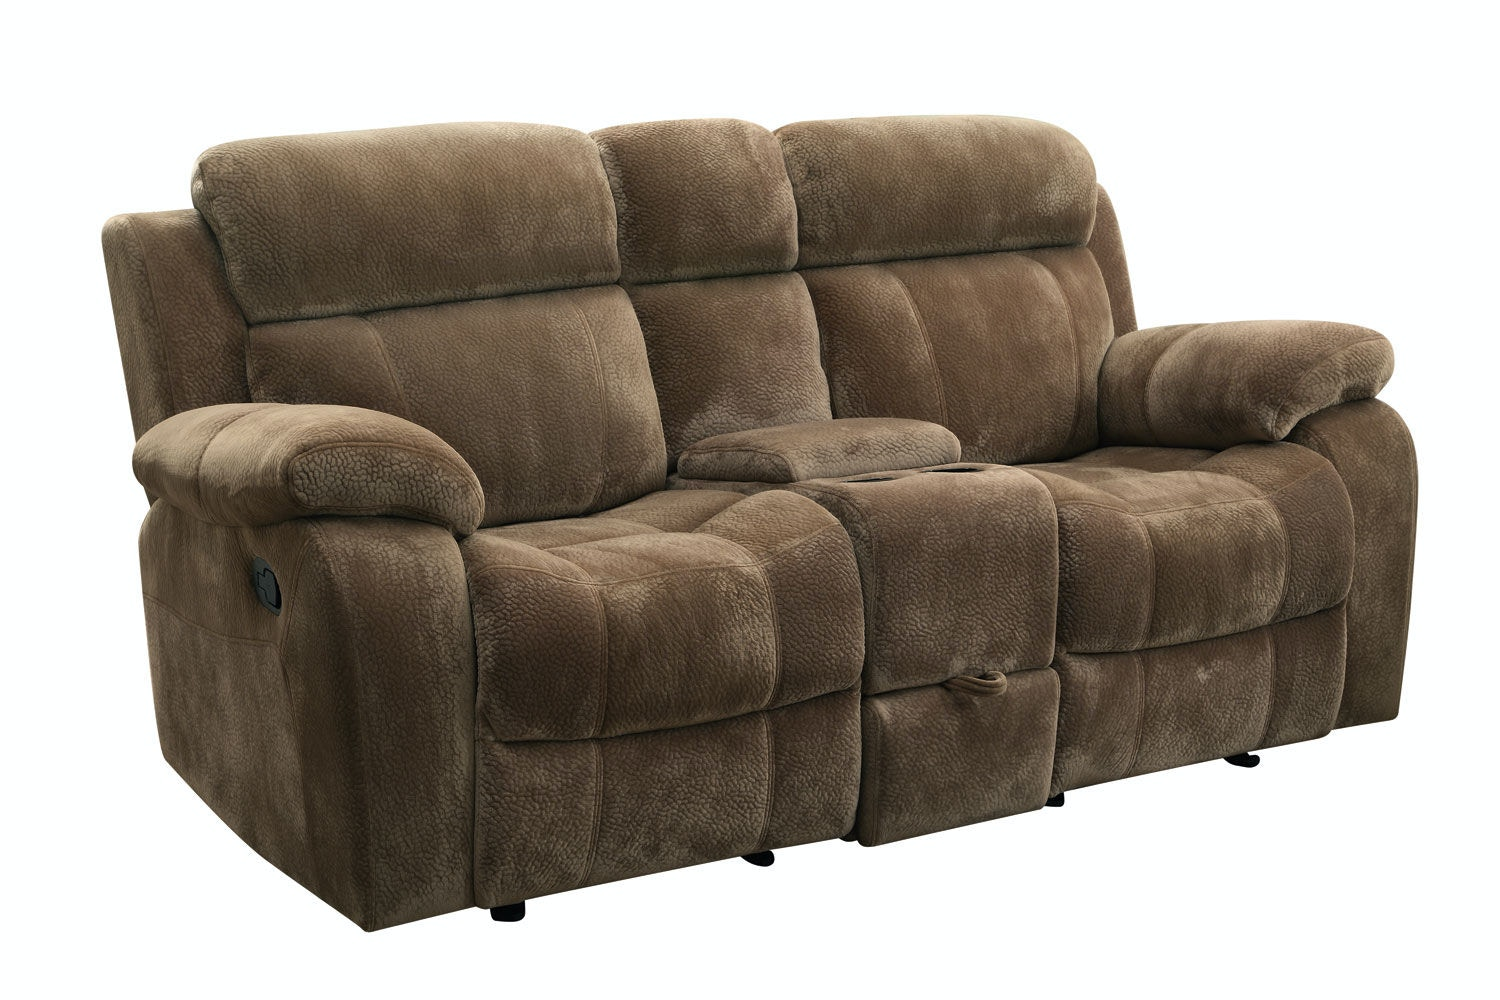 Coaster Motion Loveseat 603032